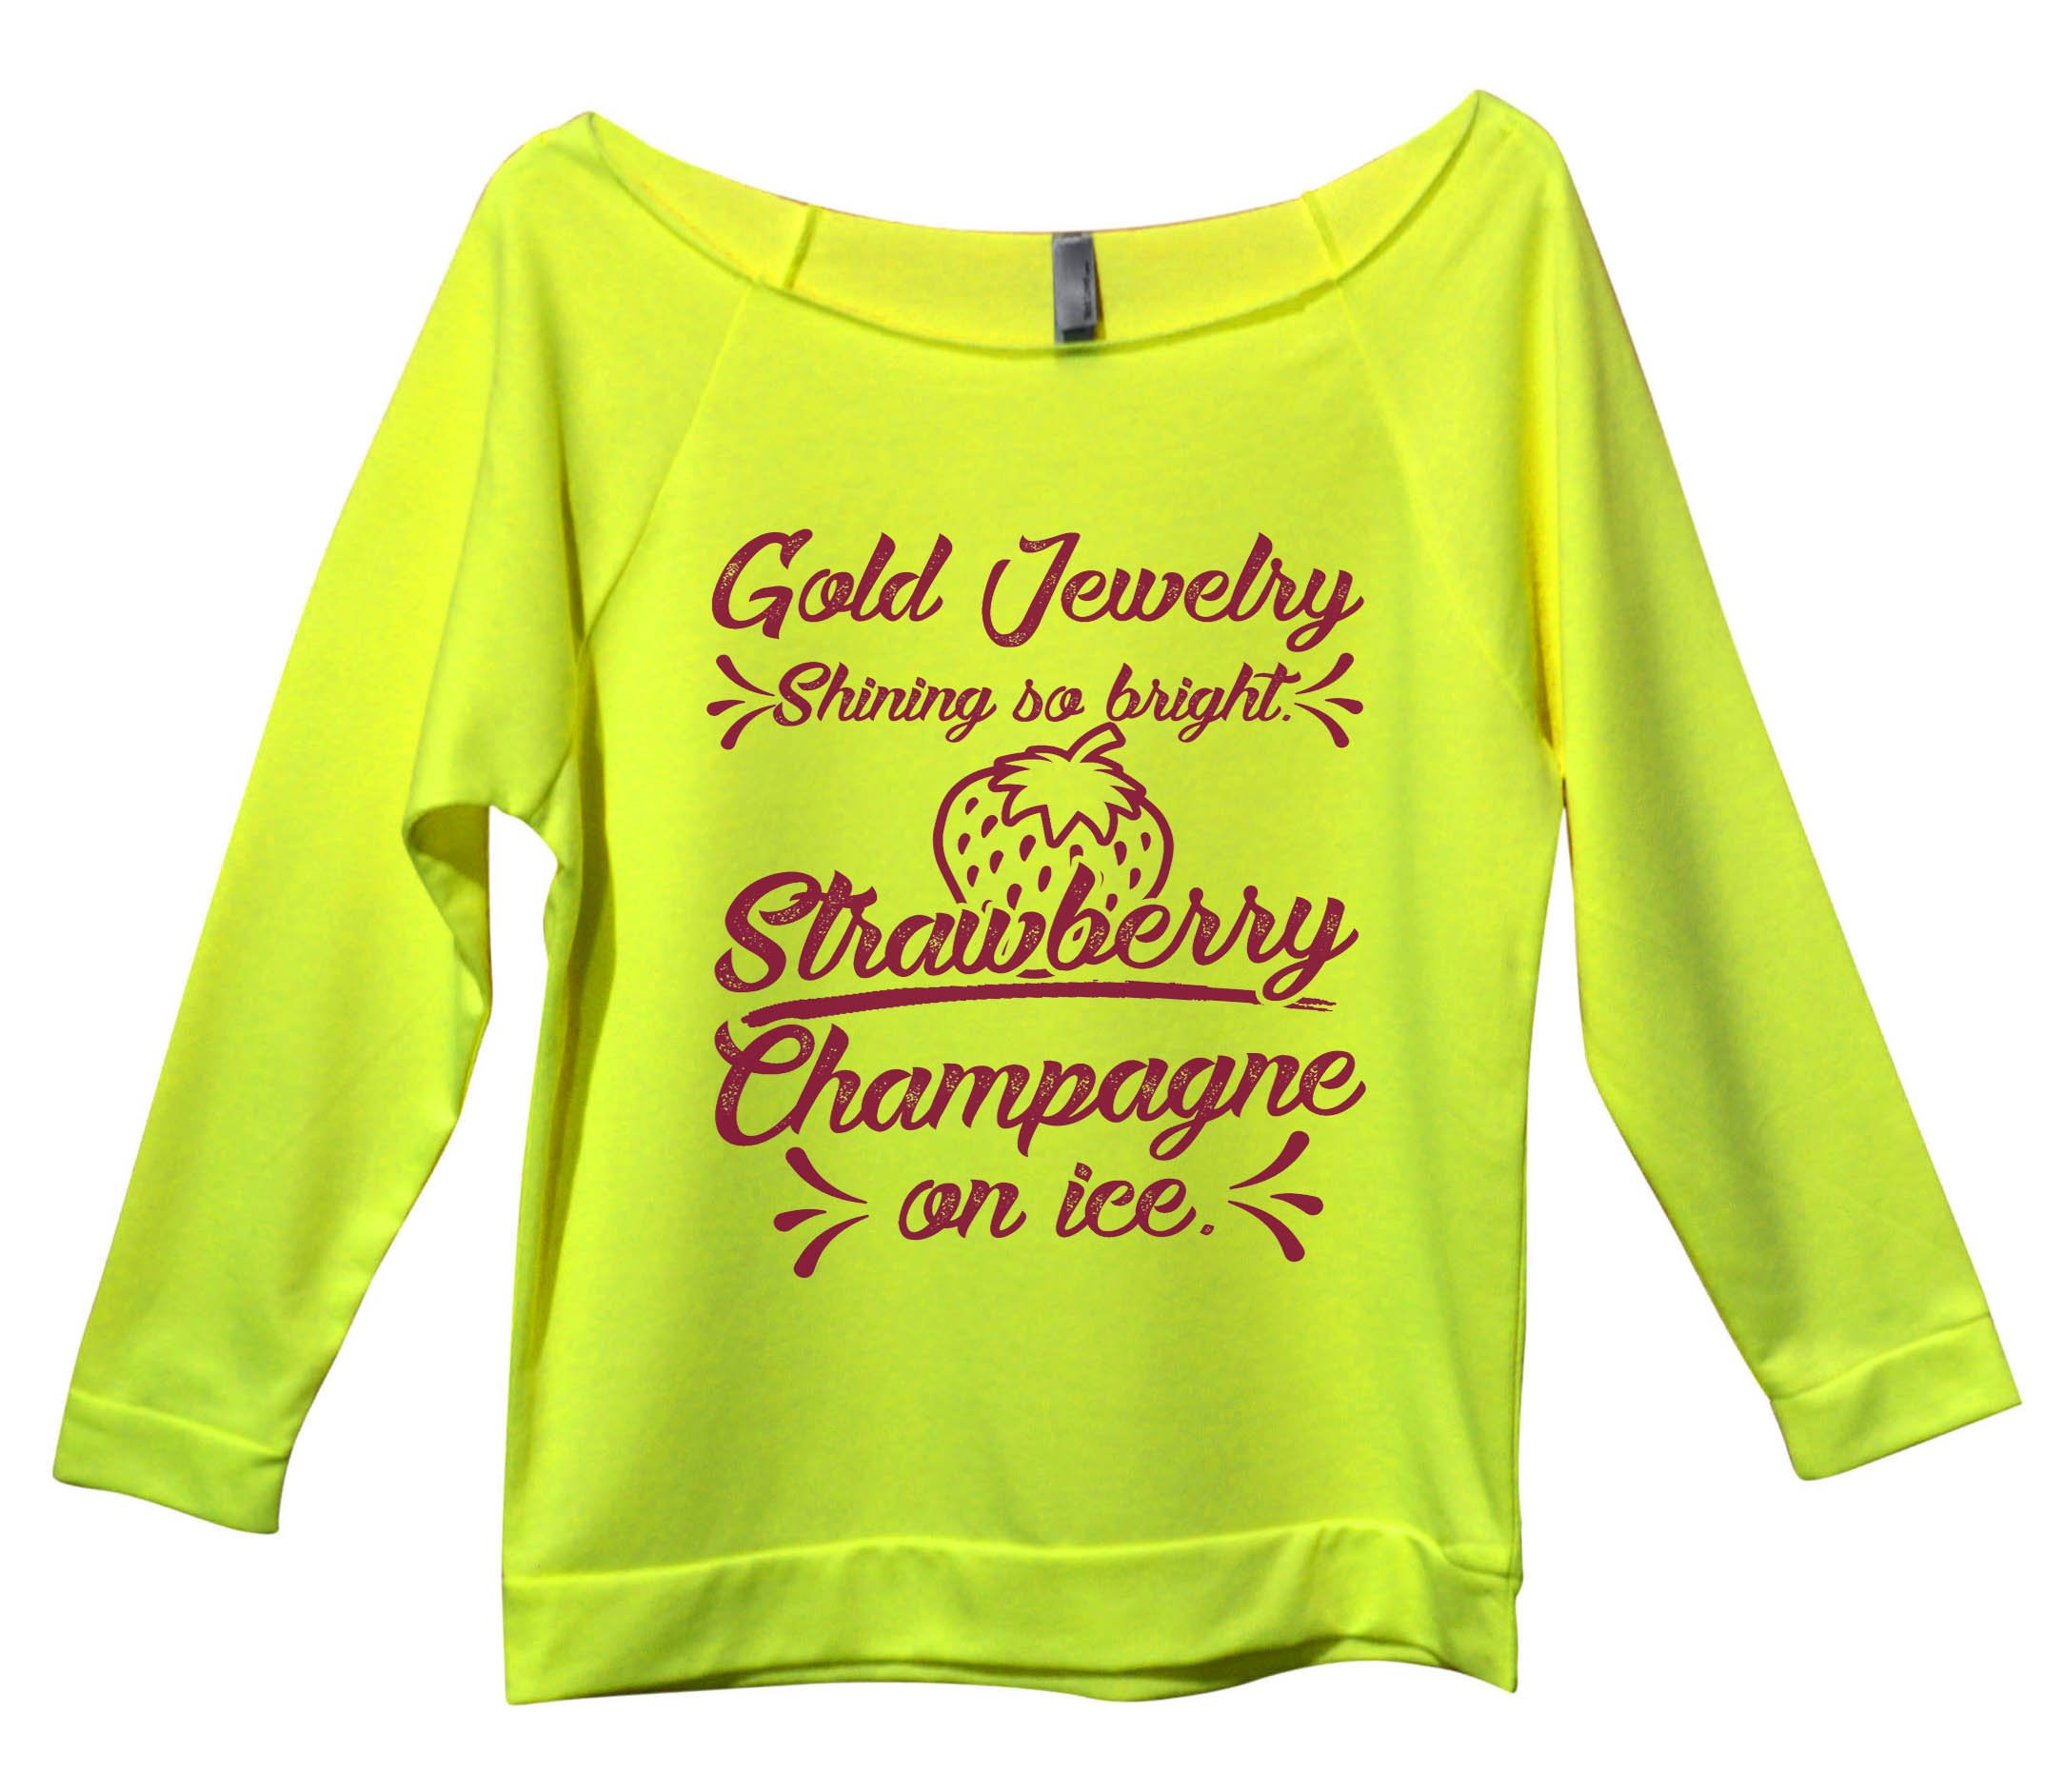 Cute Music Lover Trendy Sweatshirt ''Gold Jewelry Shining So Bright'' XX-Large, Neon Yellow